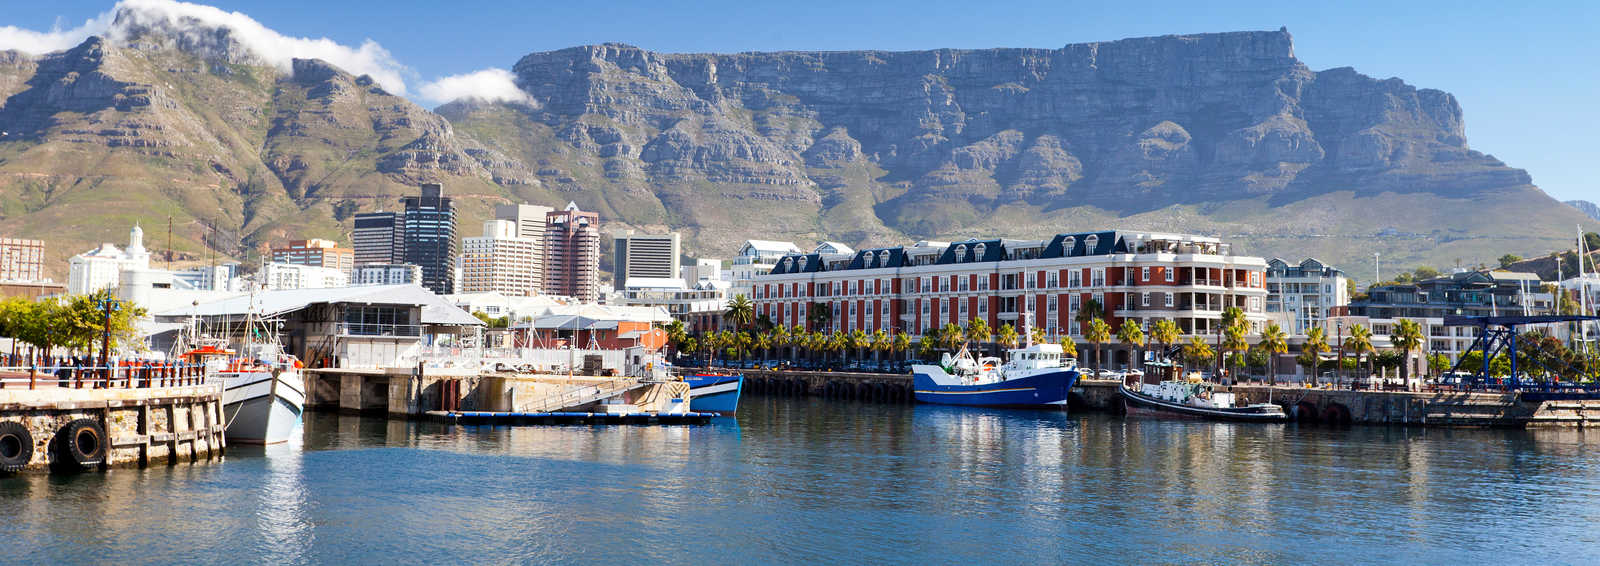 Cape Town V&A Waterfront